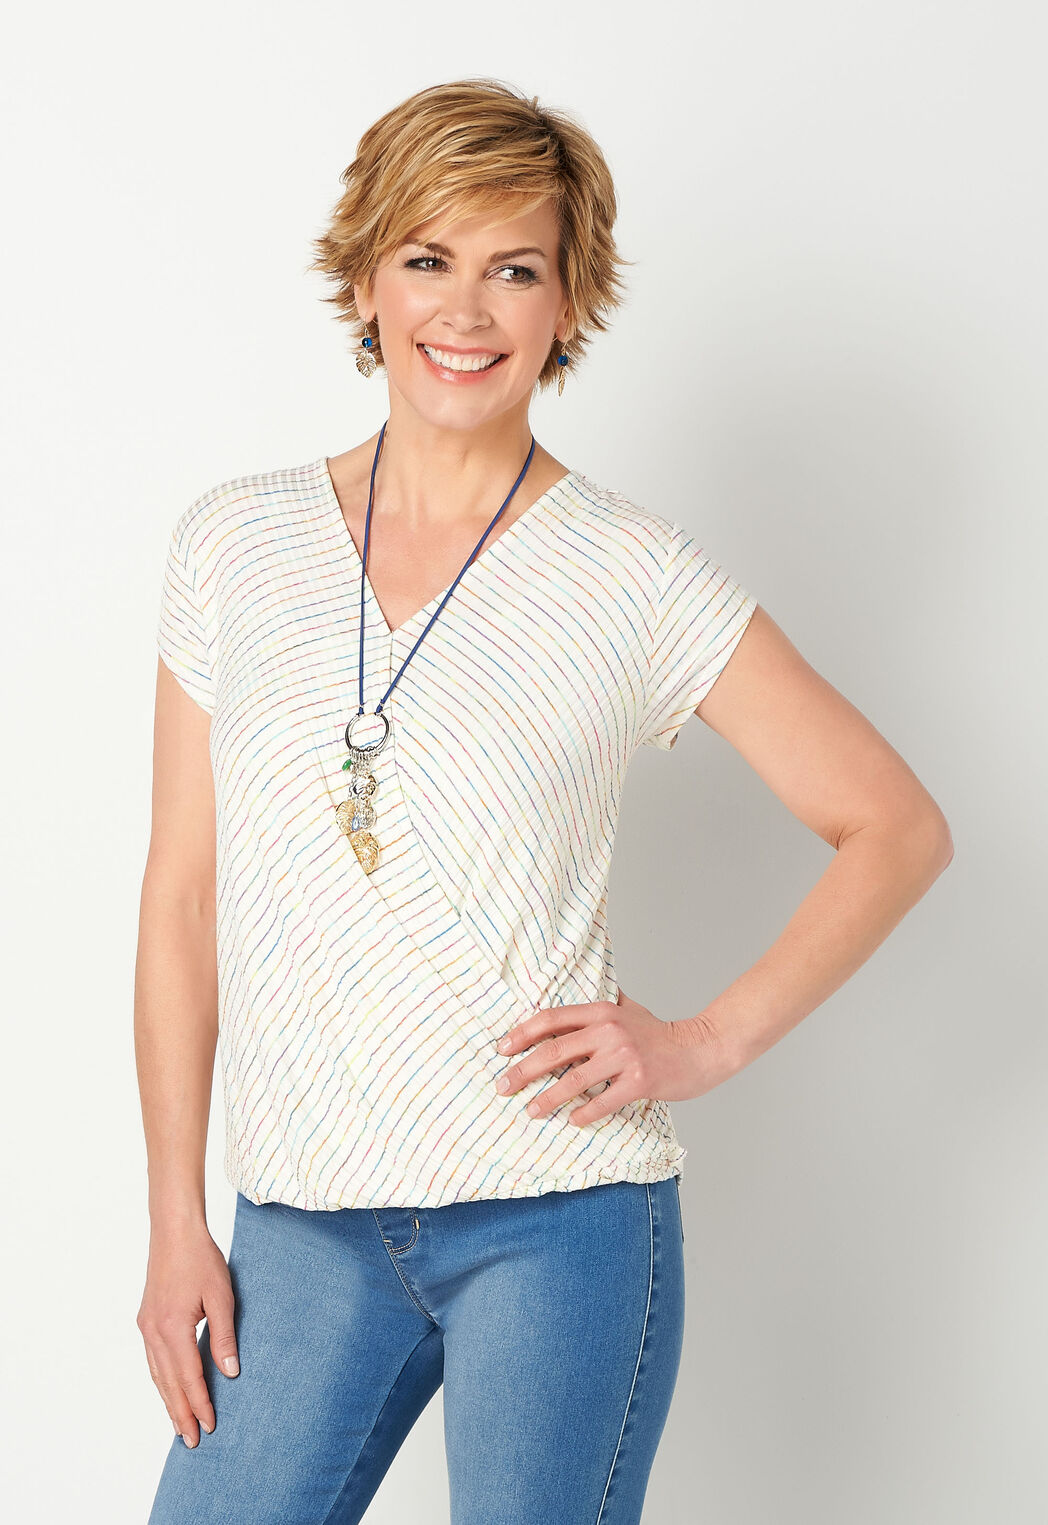 b05b60d7ed54f3 ... Crossover Texture Knit Top. Previous. add to wish list · add to wish  list